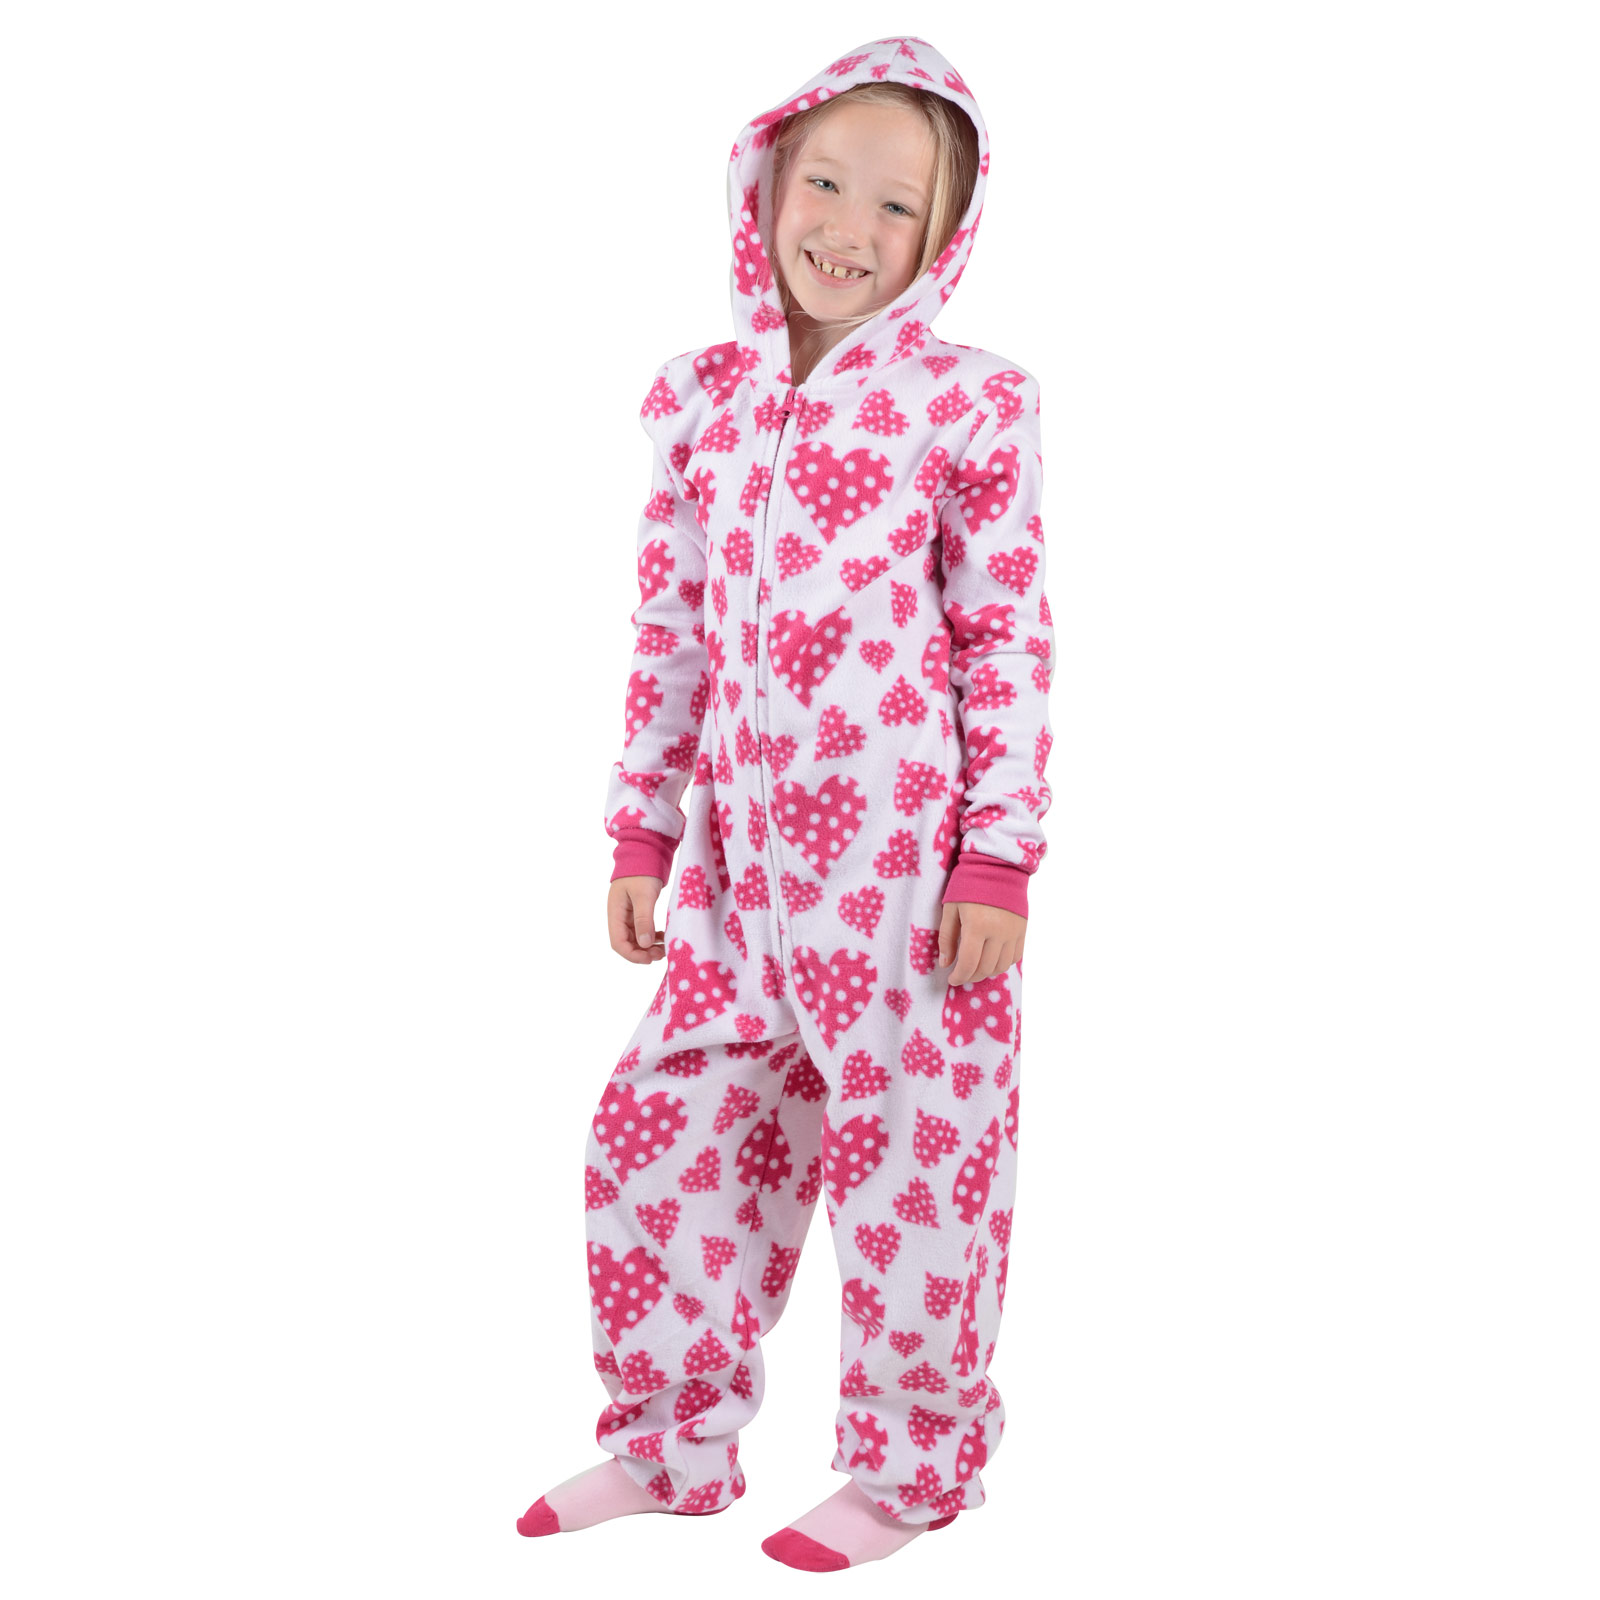 b03269a09a4a6 Enjoy free shipping and easy returns every day at Kohl's. Find great deals  on Girls